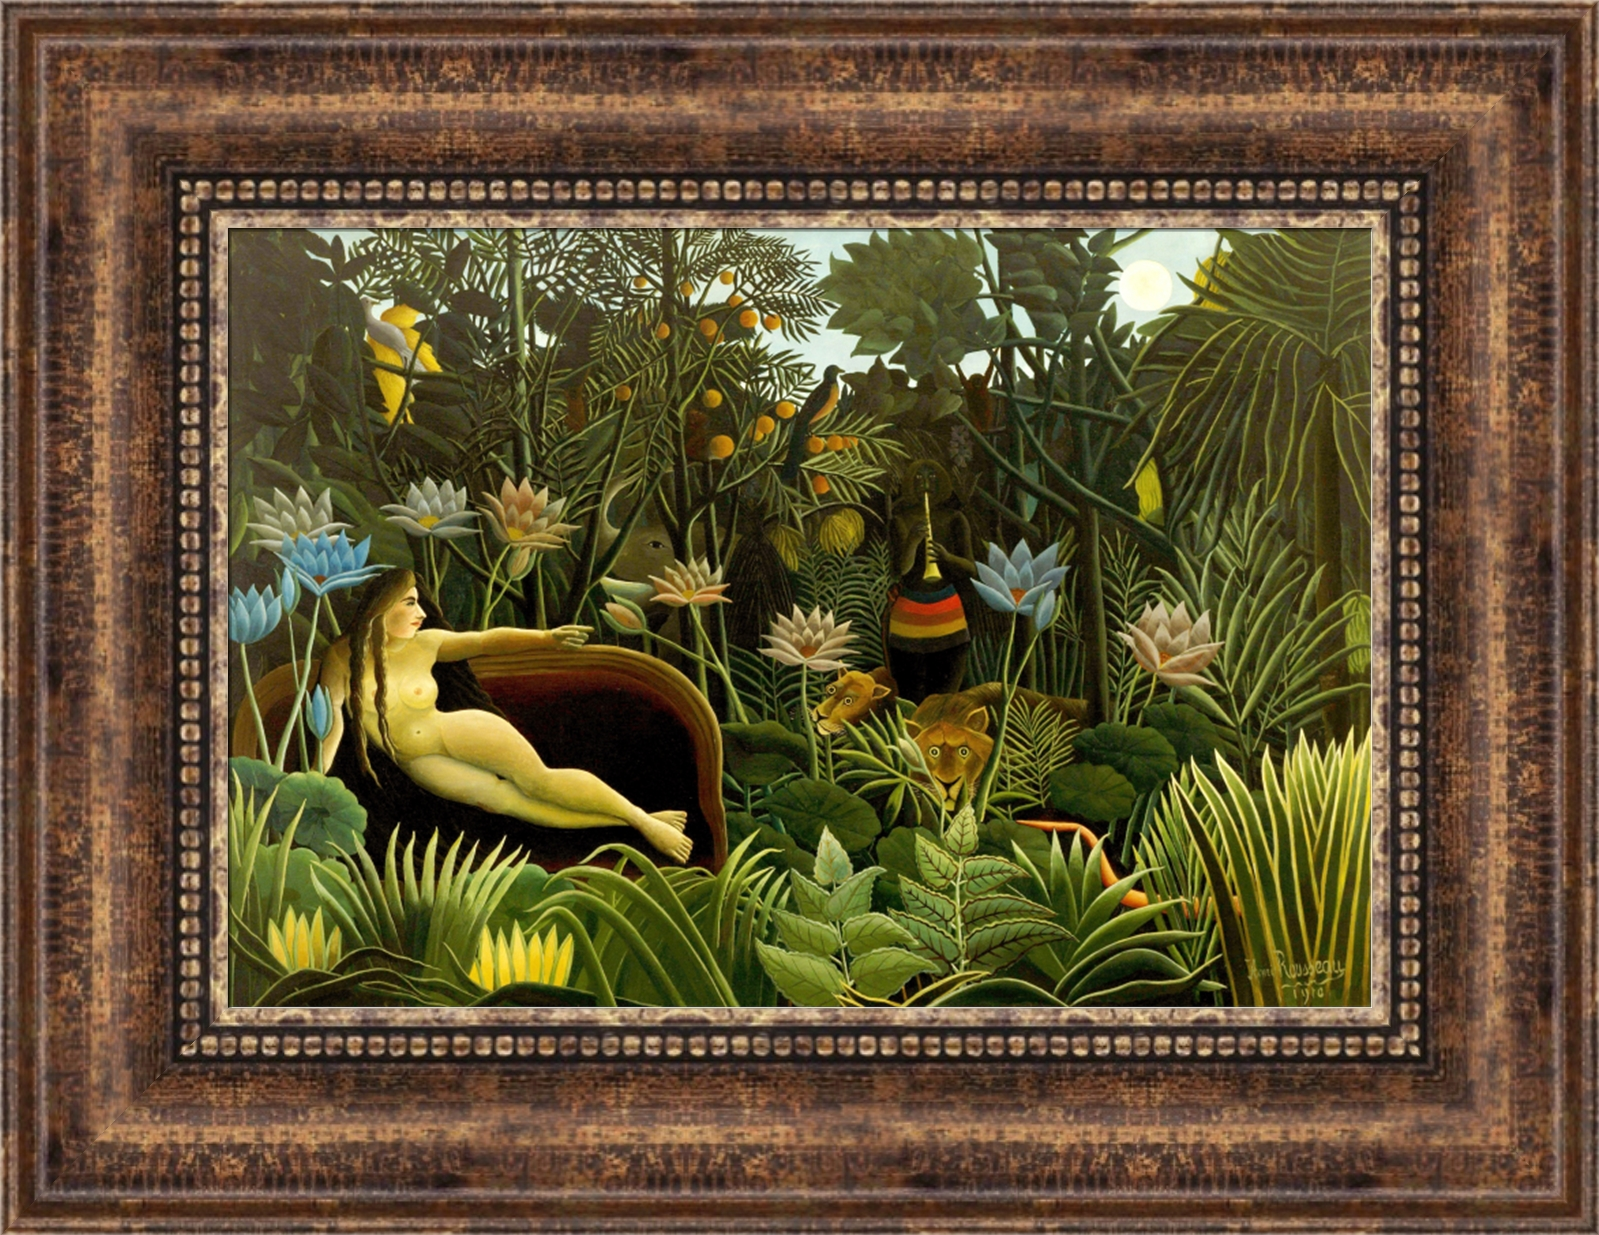 essays on henri rousseau Have had very memorable lives when people think of henri rousseau they think of all his amazing jungle sce henri rousseau, and alphonse mucha, have had very memorable lives when people think of henri rousseau they think of all his amazing jungle sce skip to content support@superbessaywriterscom: welcome to our essay.